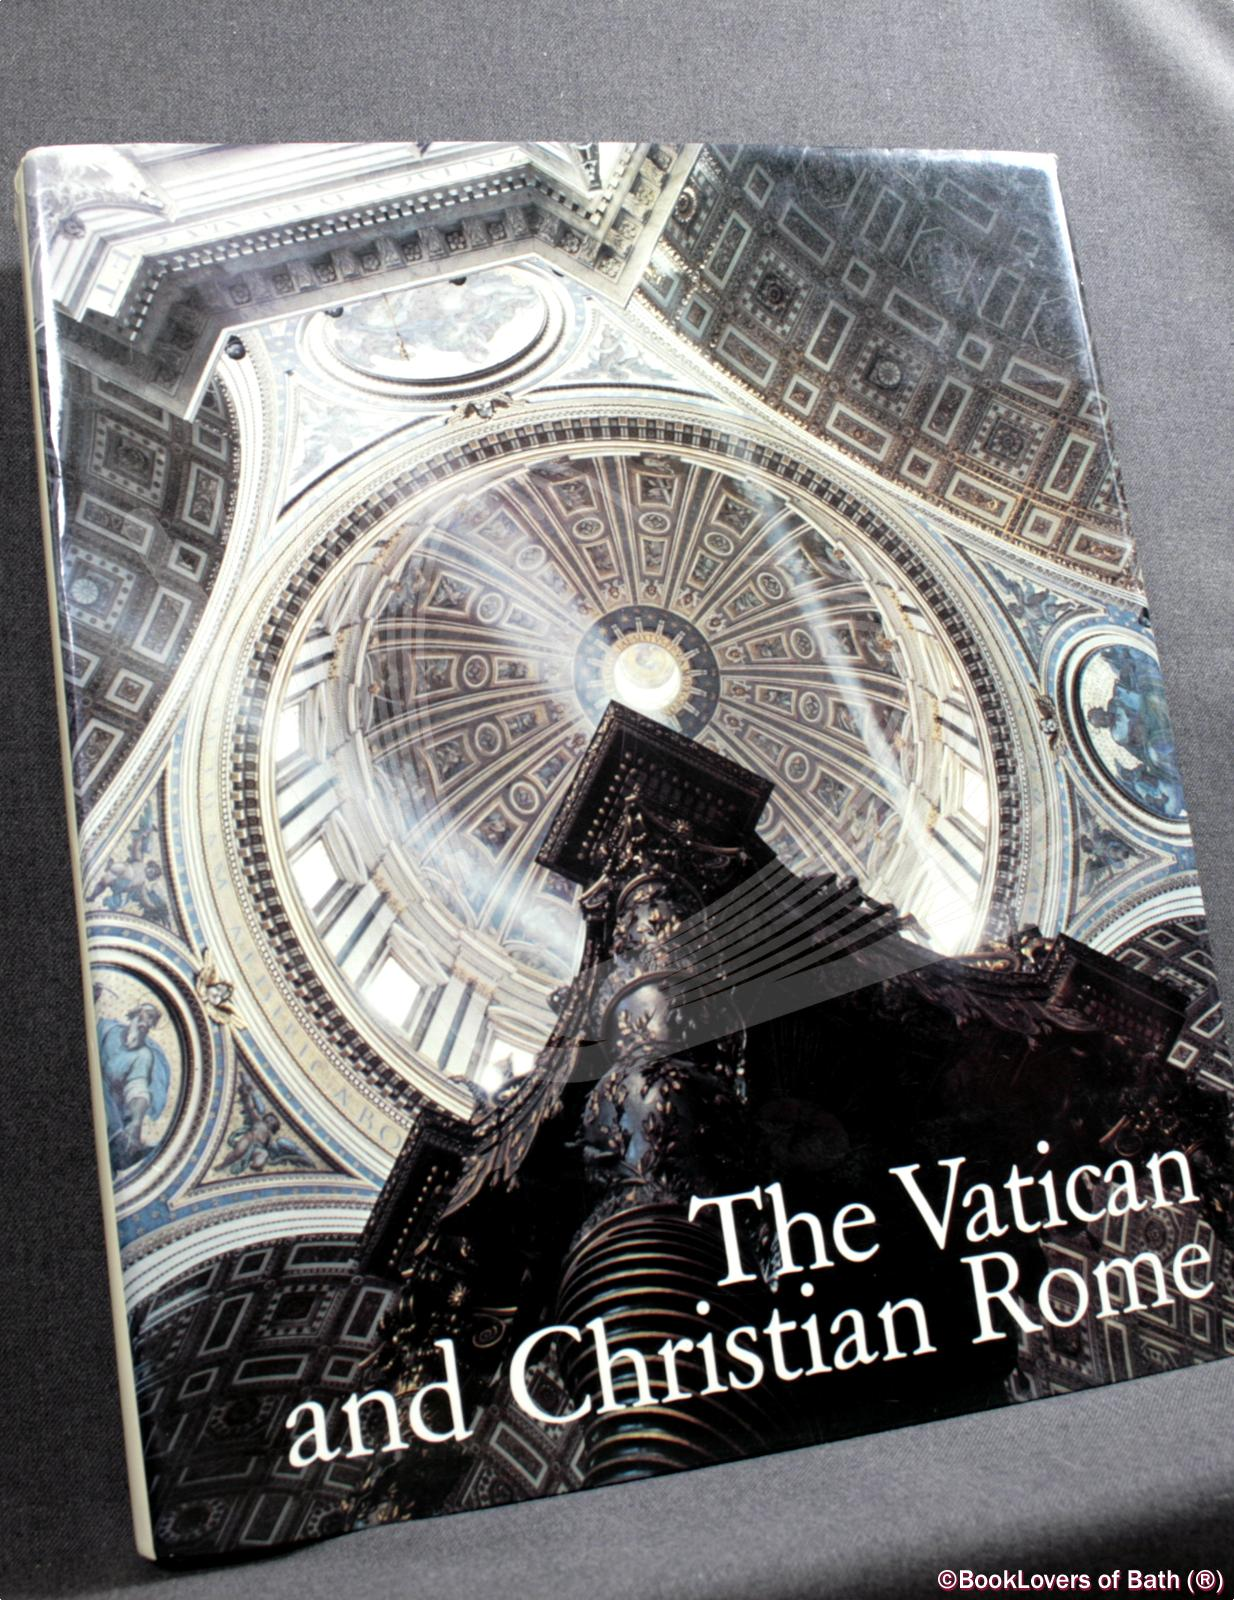 The Vatican and Christian Rome - Anon.